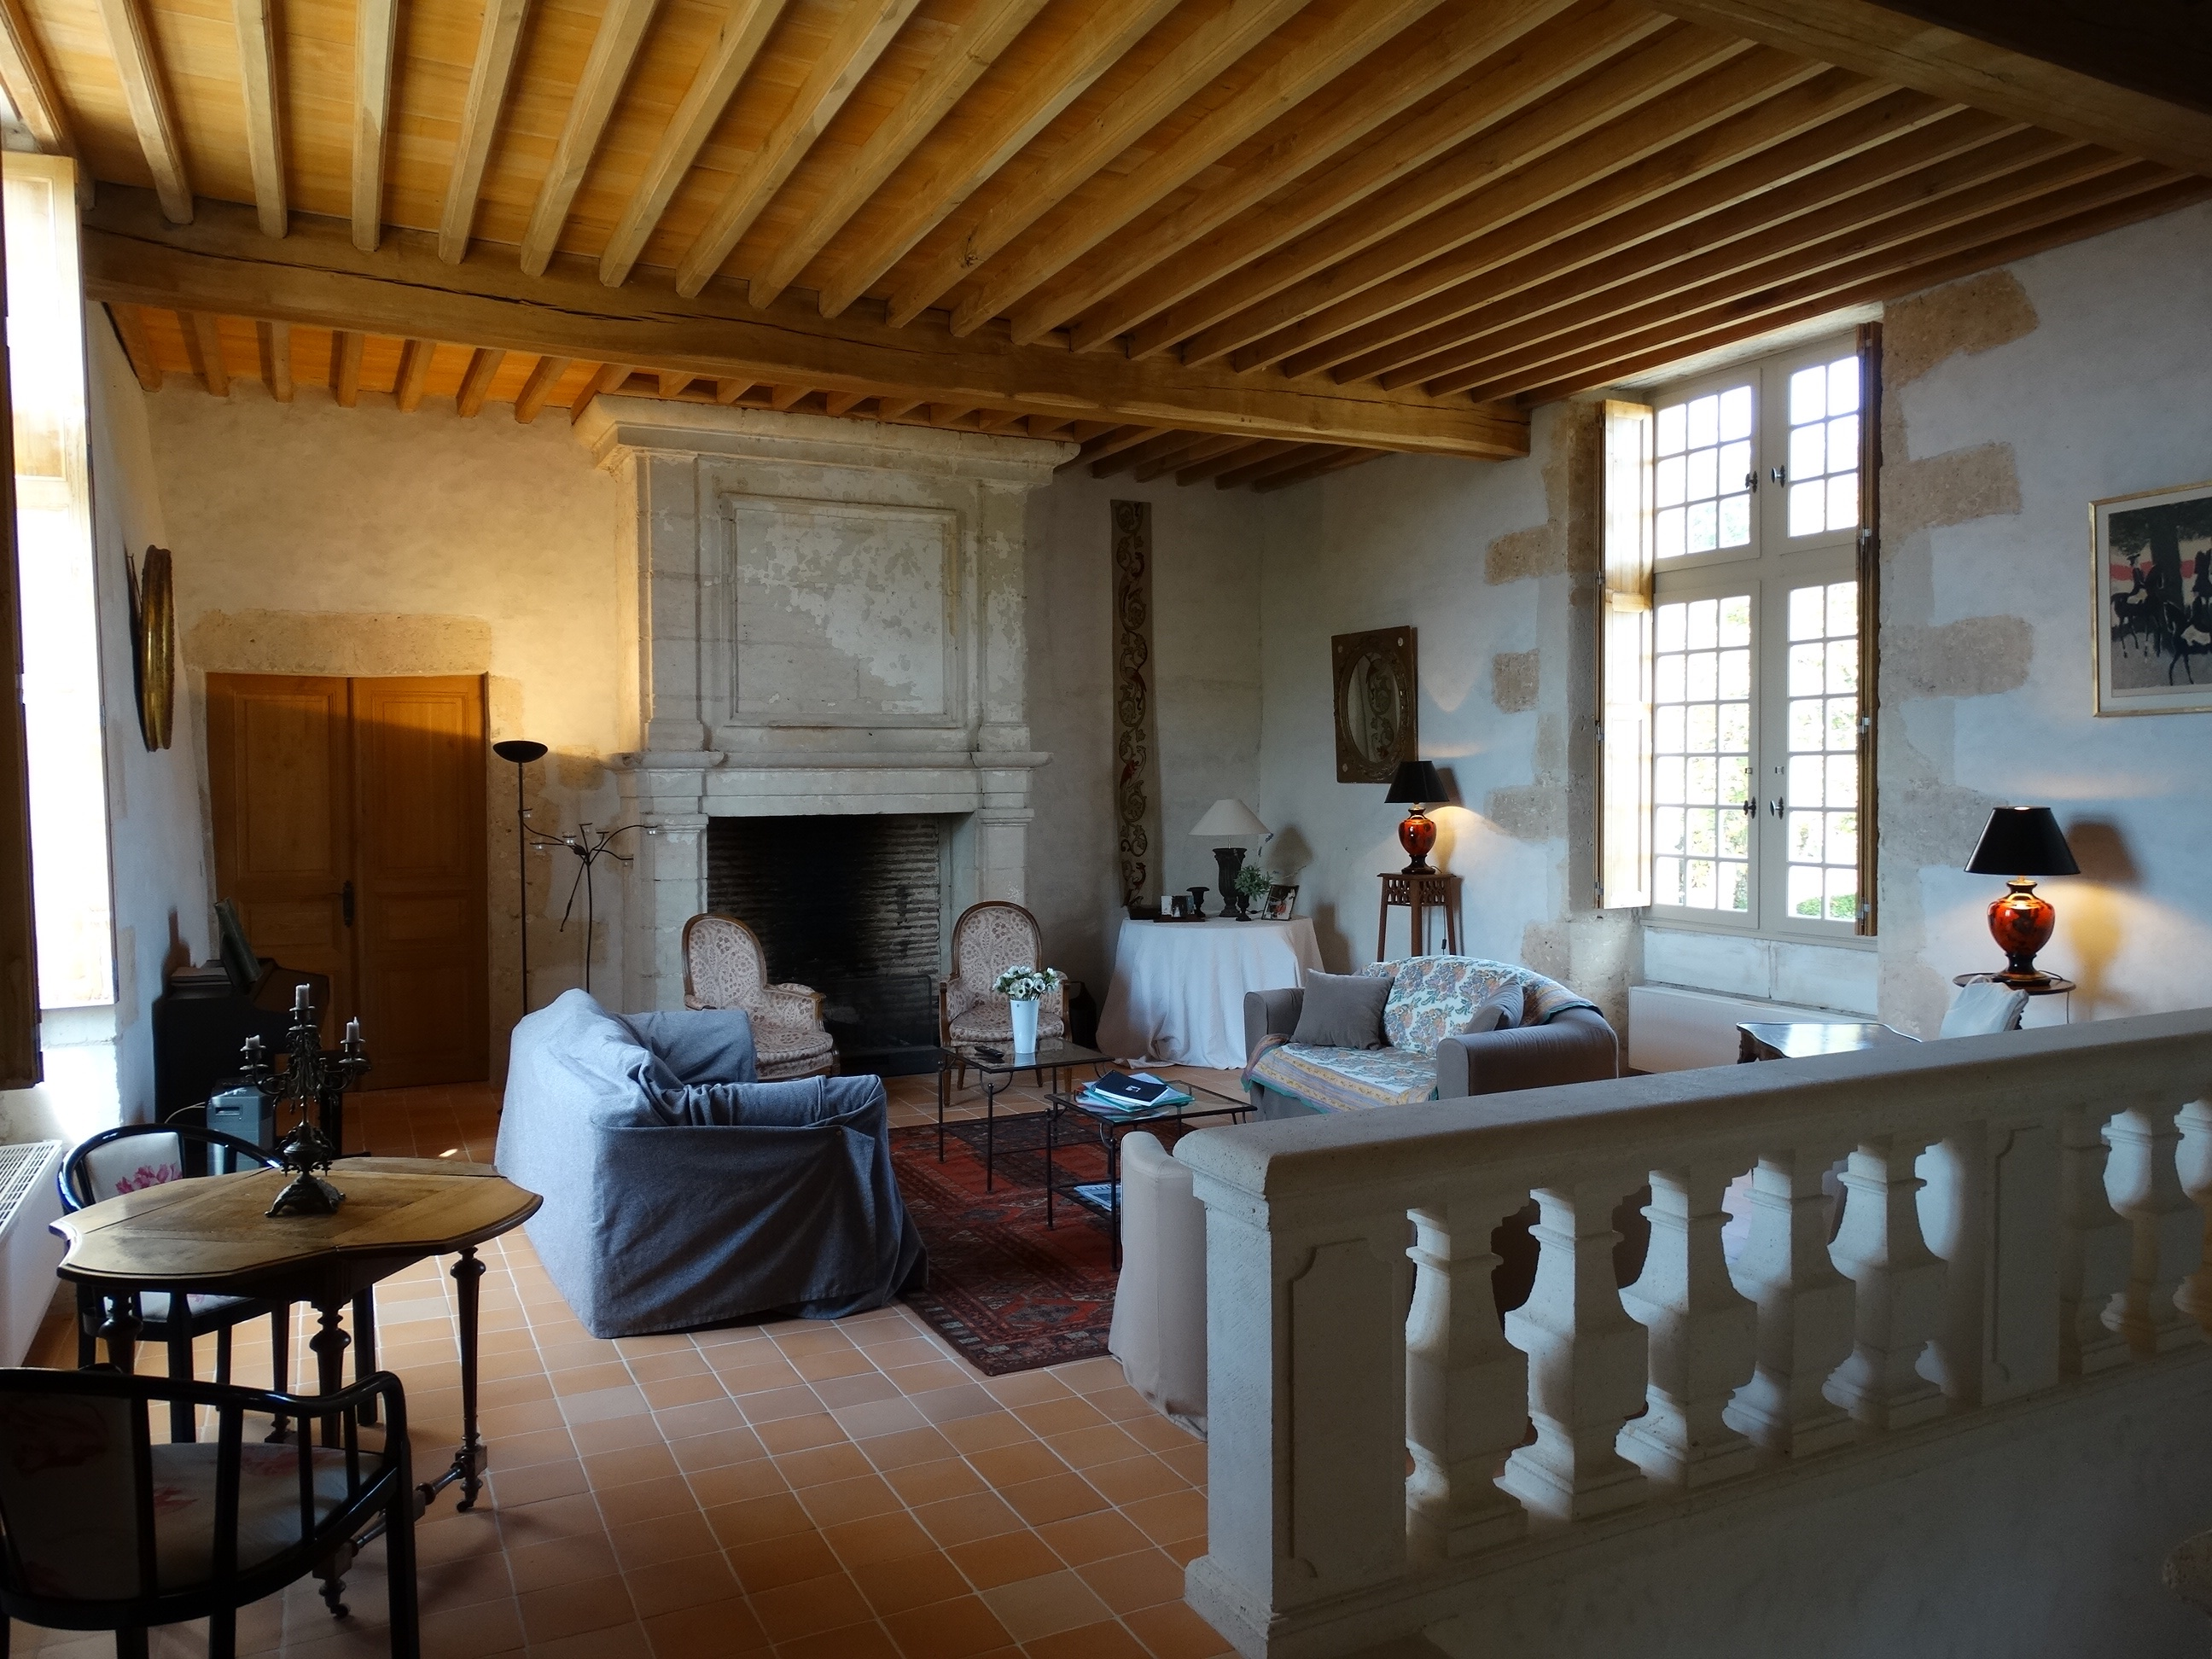 Elms sitting-room in Puymangou's chateau, France